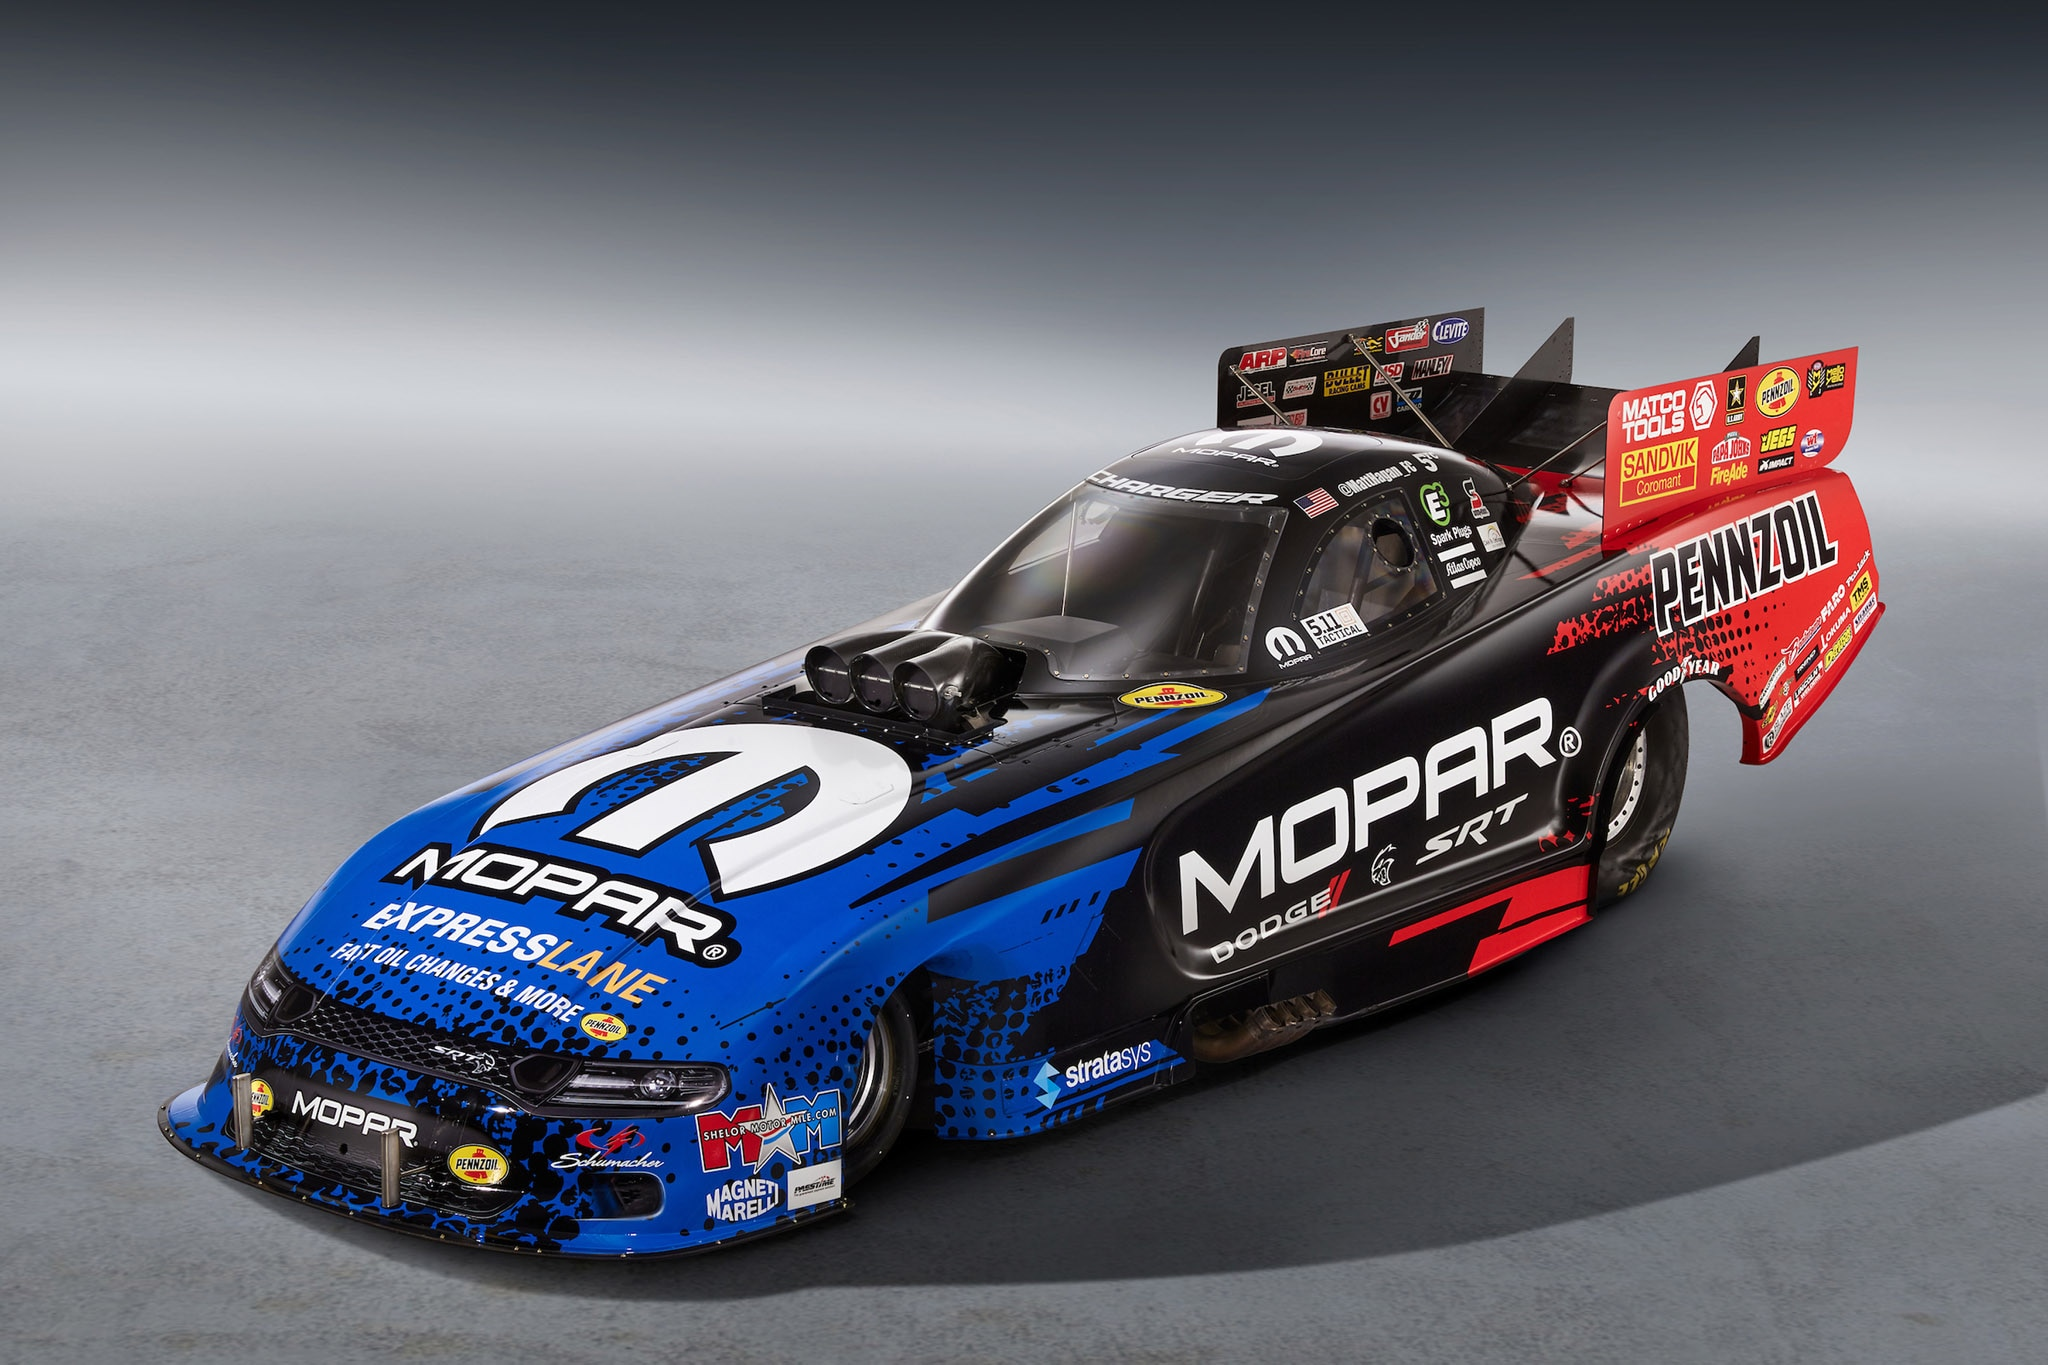 2019 Mopar Dodge Charger Srt Hellcat Nhra Funny Car Packs